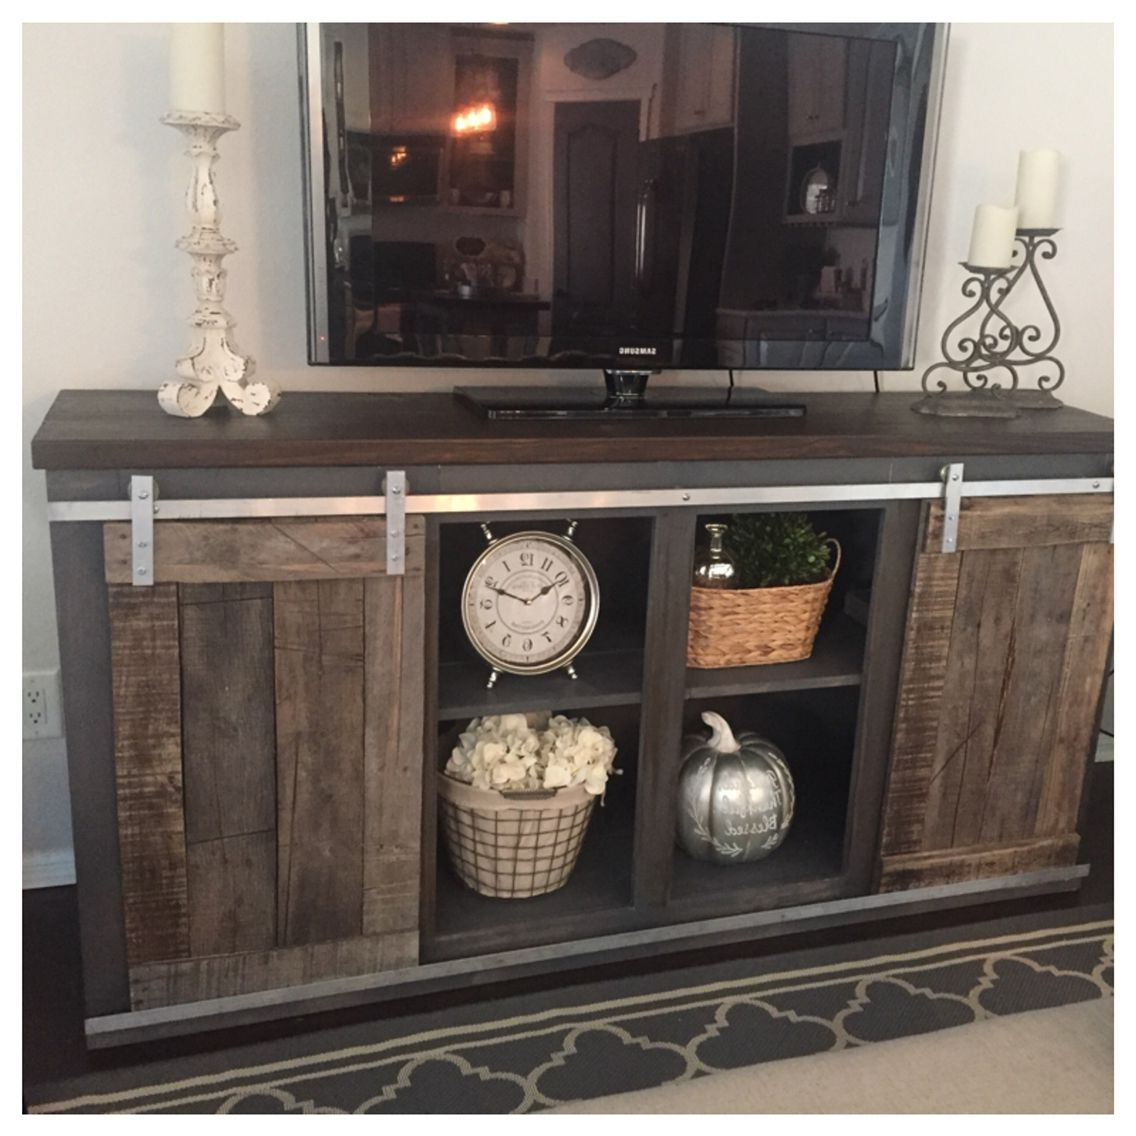 Fashionable 17 Diy Entertainment Center Ideas And Designs For Your New Home For Wood Tv Armoire Stands (View 20 of 20)